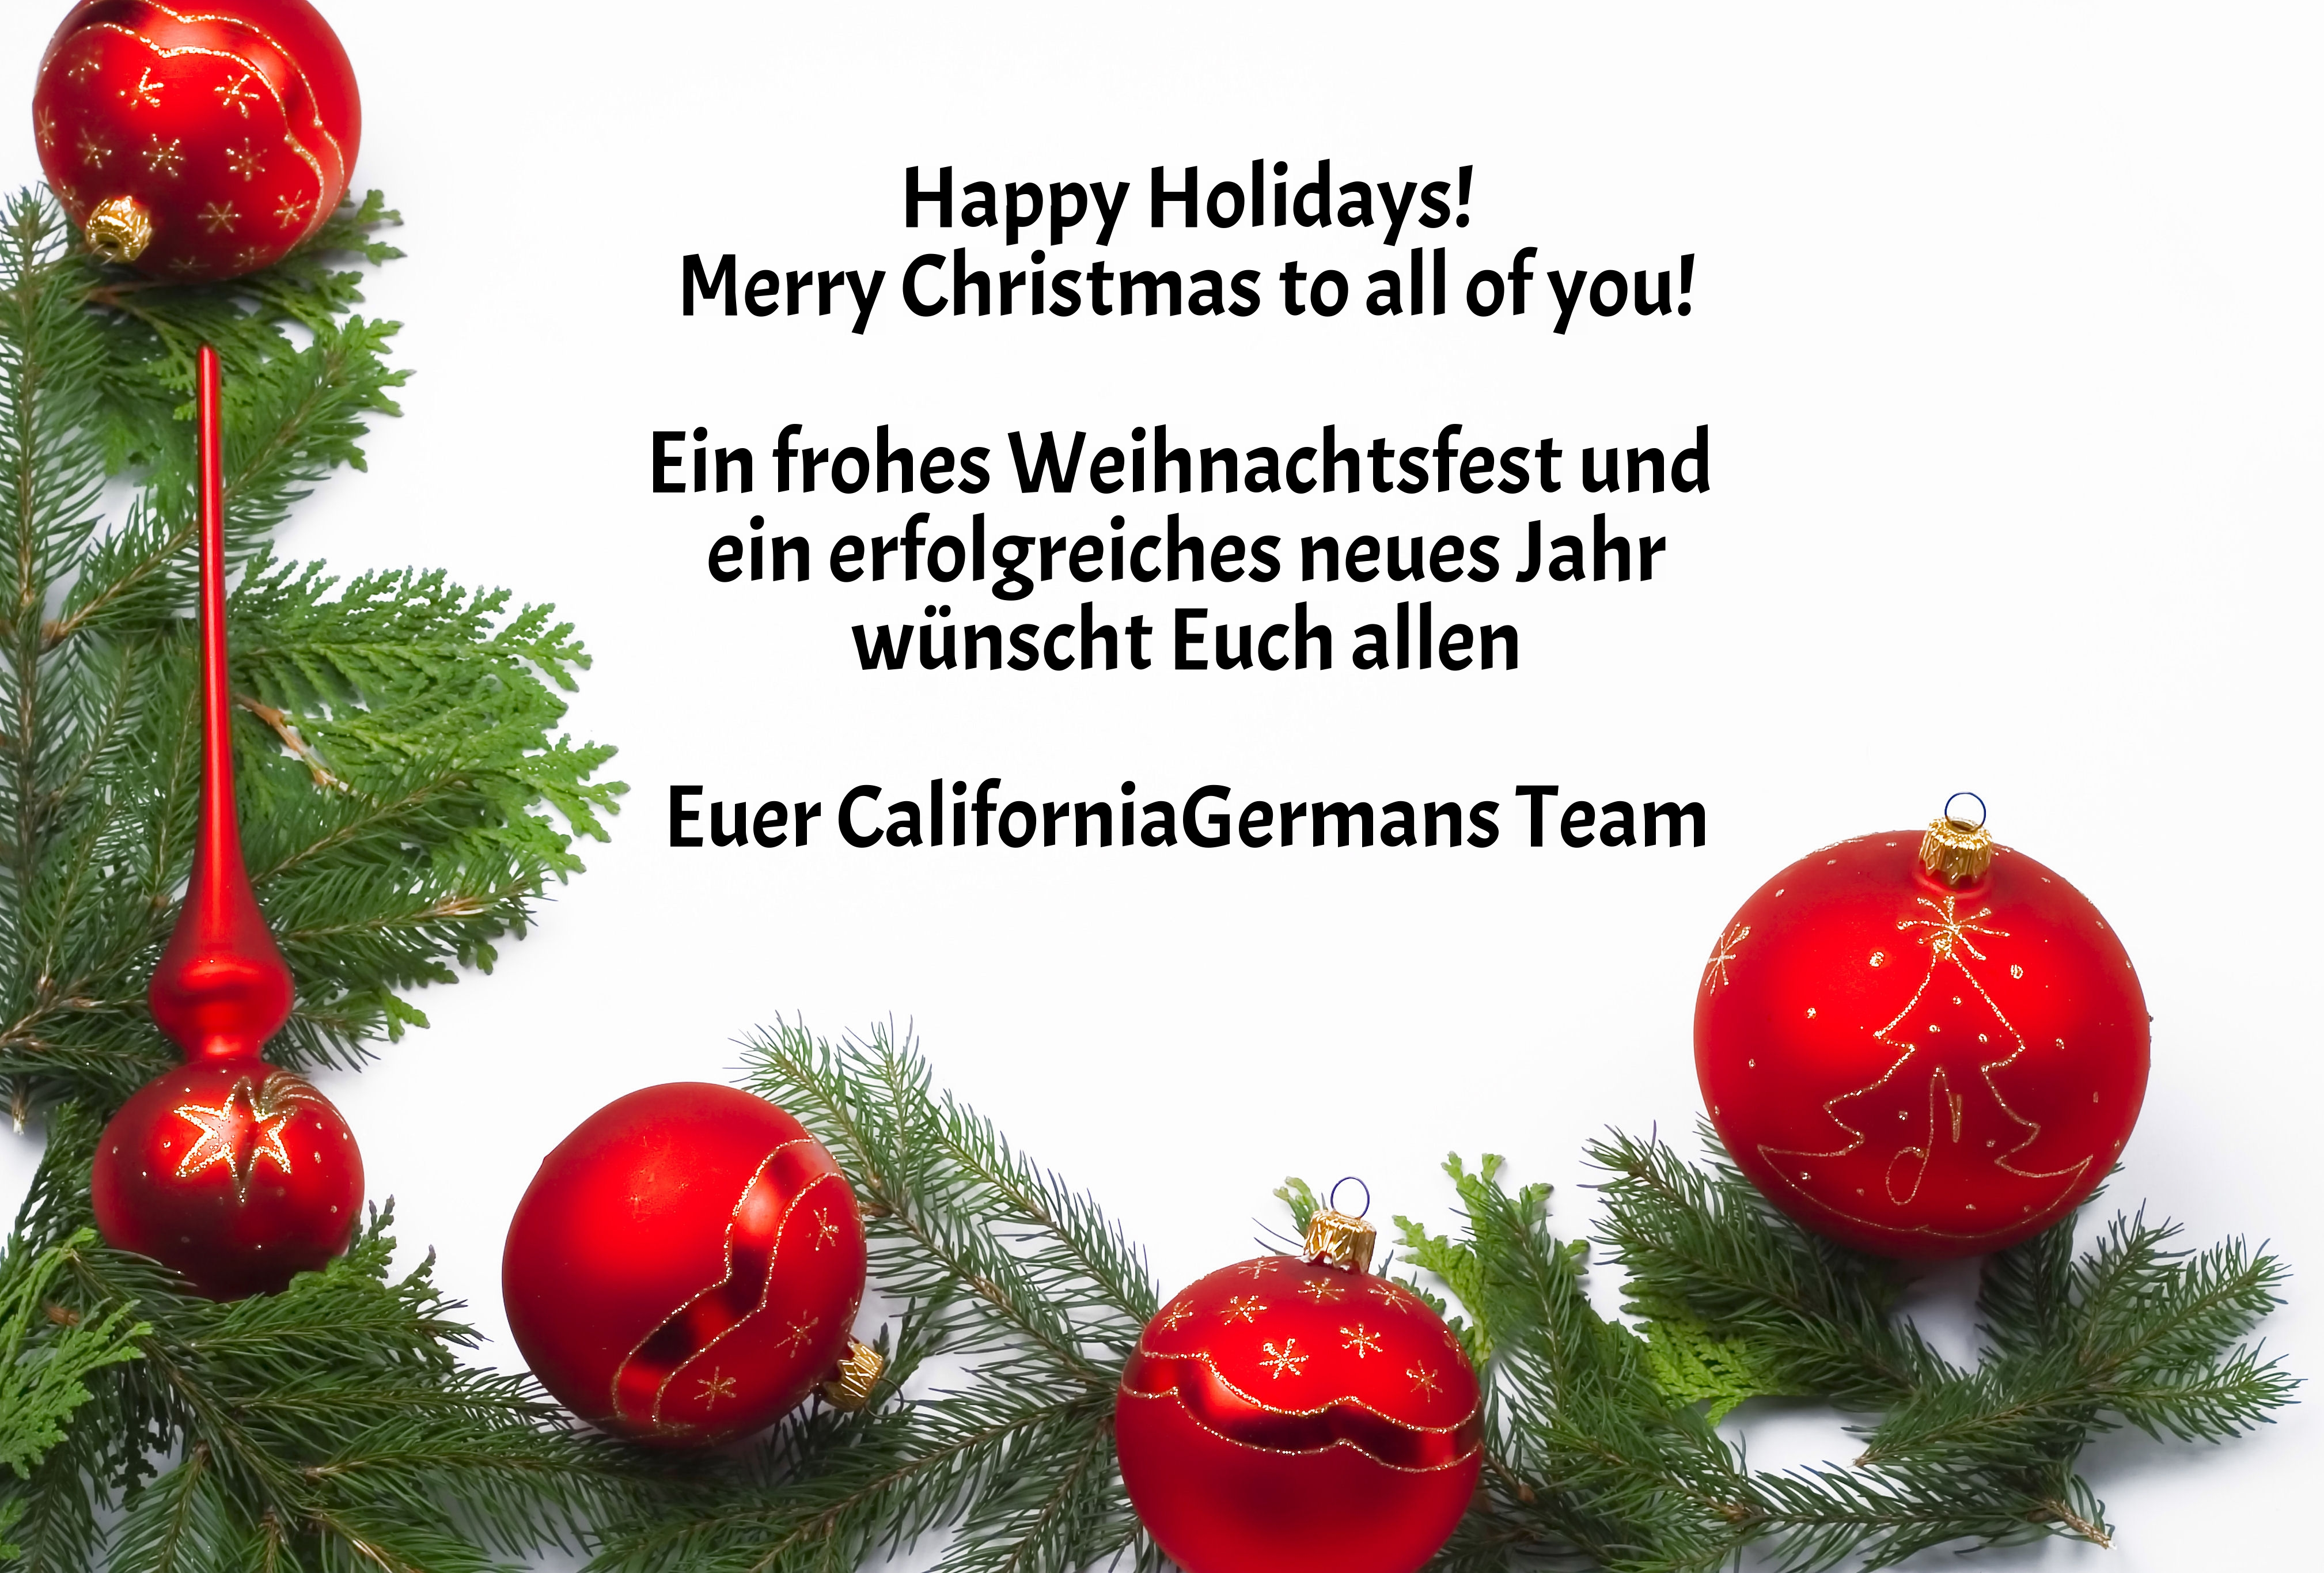 Happy Holidays Merry Christmas Frohe Weihnachten